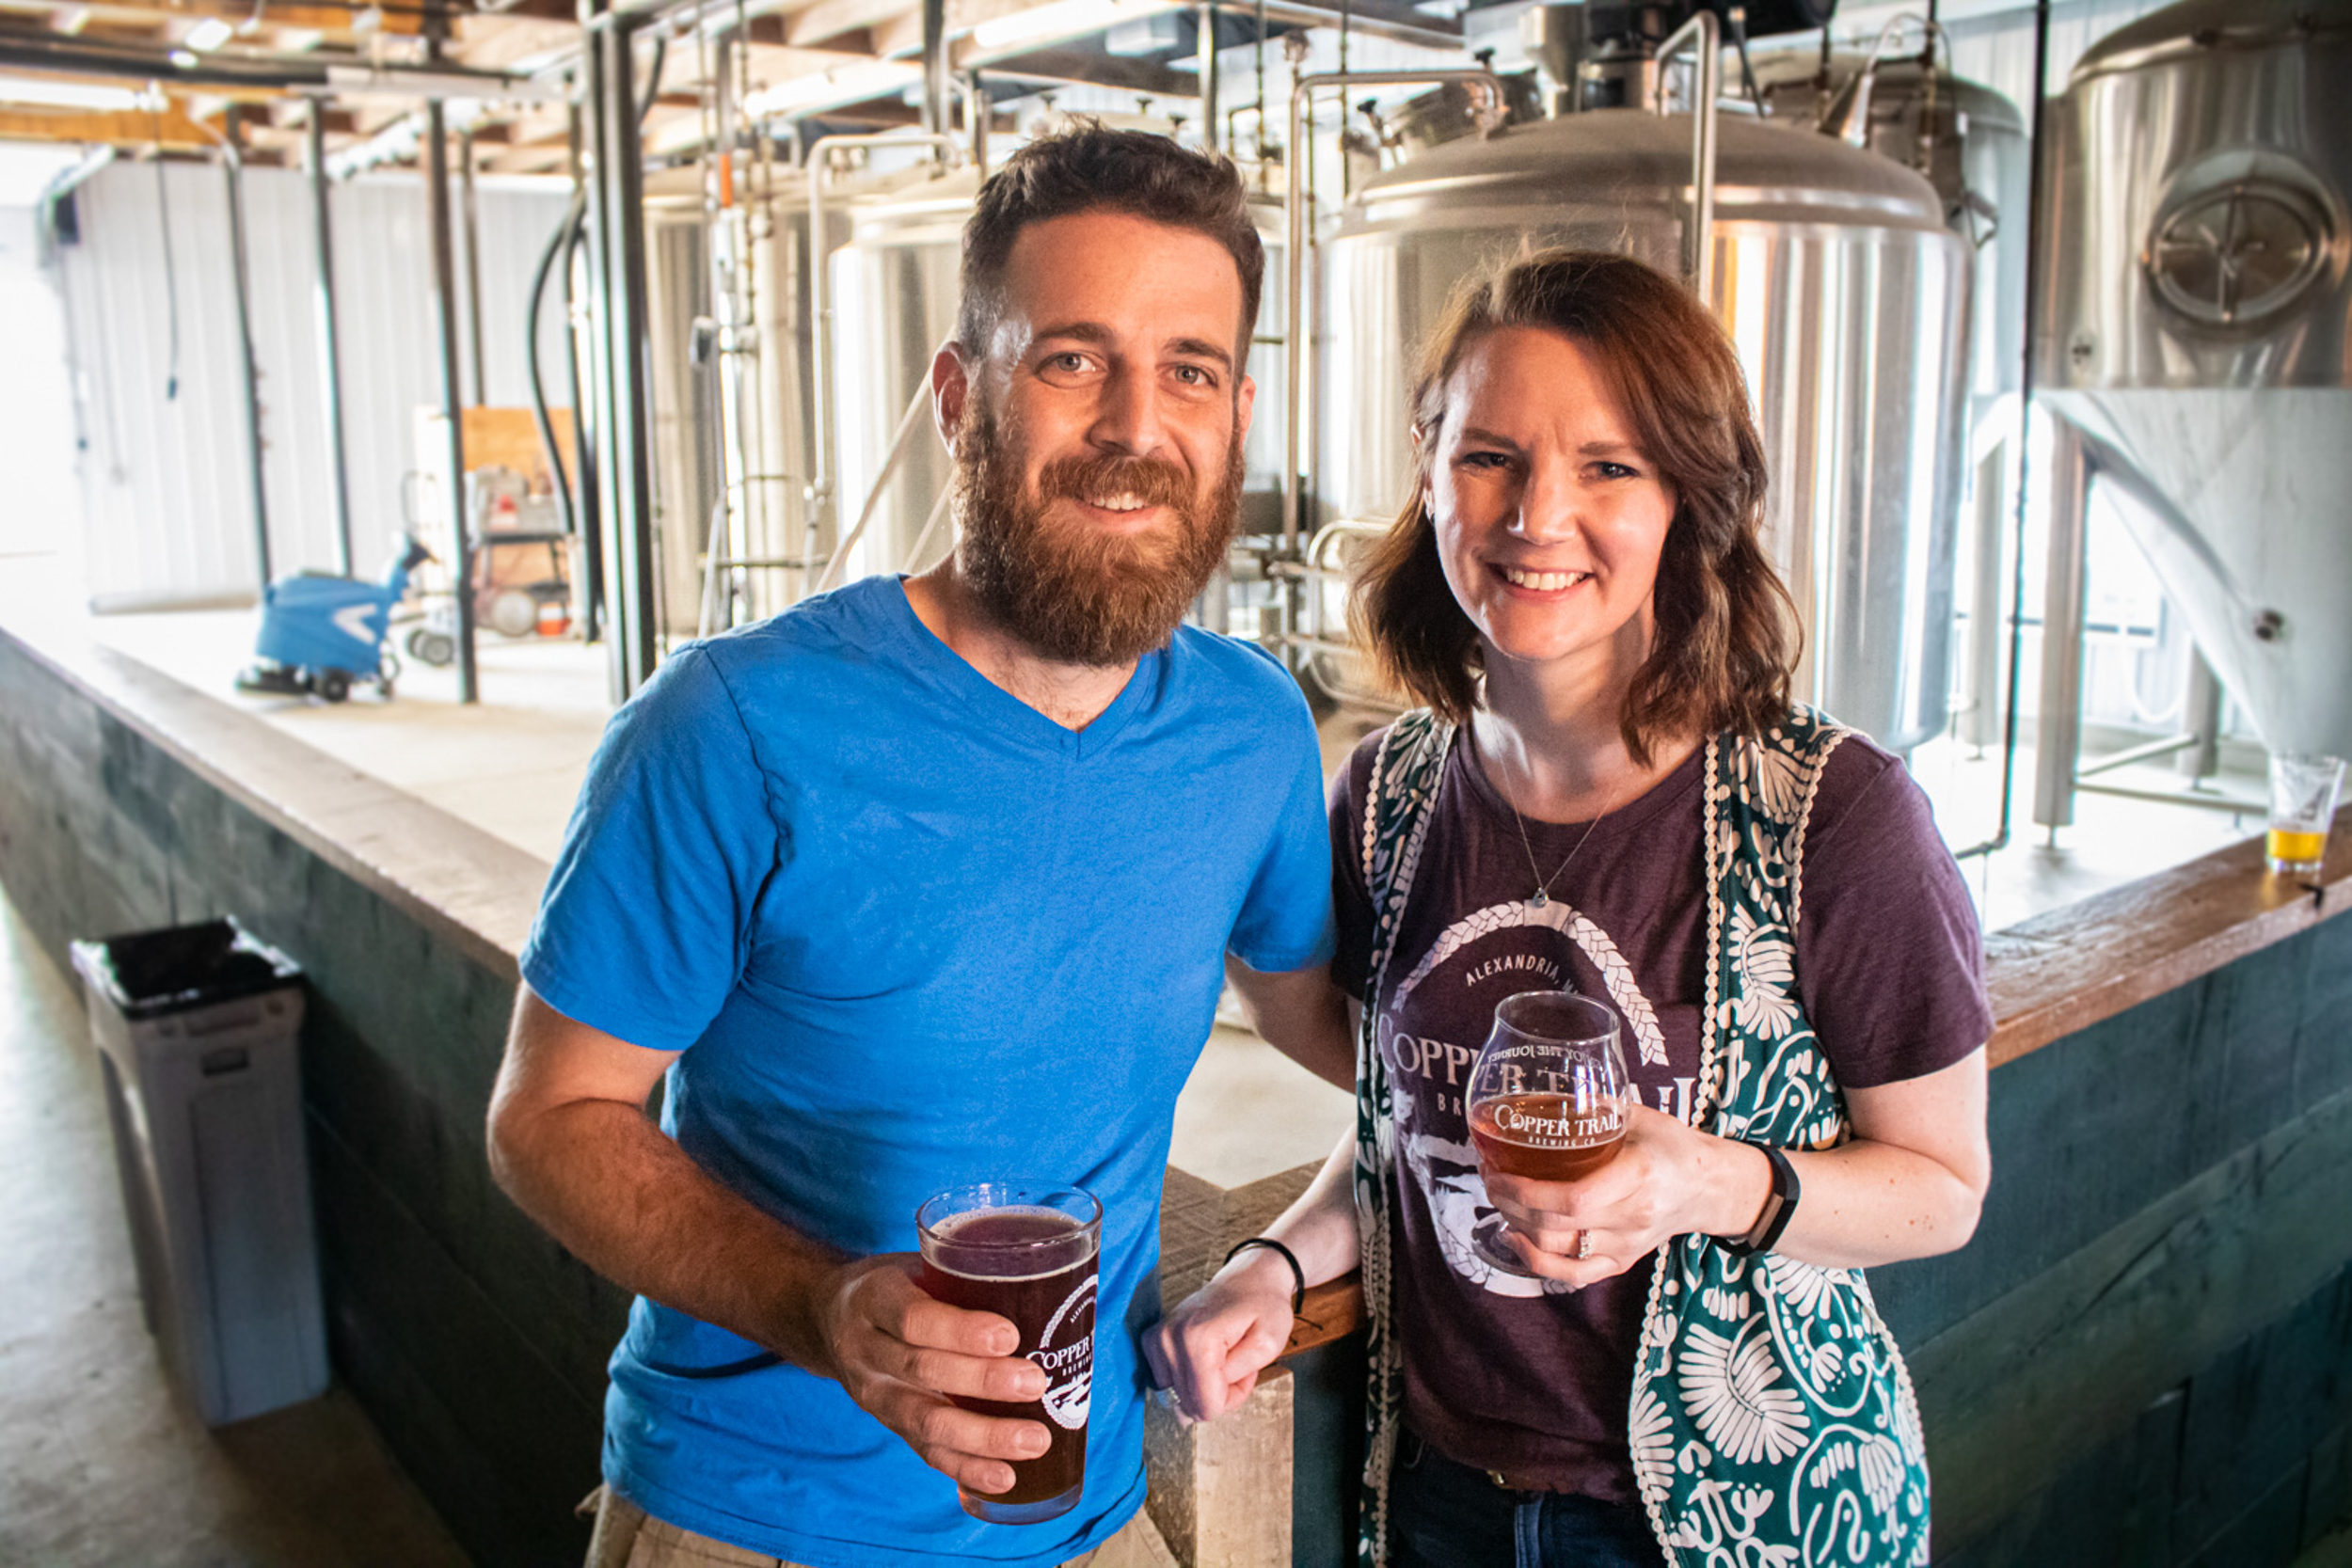 First Look: Copper Trail Brewing Company's new taproom in